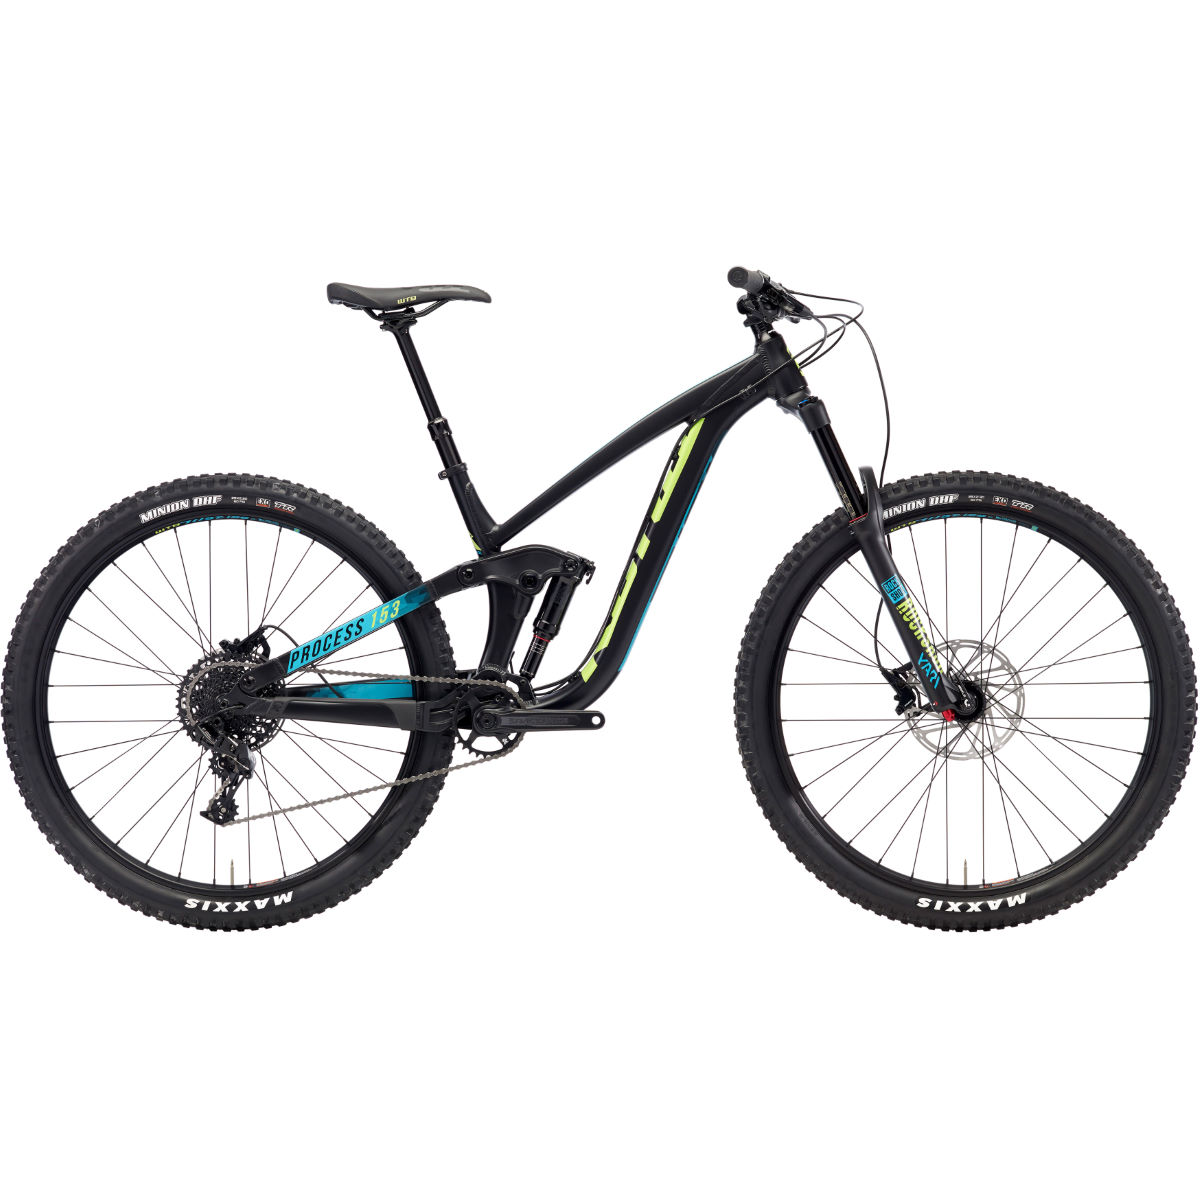 VTT Kona Process 153 AL 29 pouces (2018) - Medium Stock Bike Noir